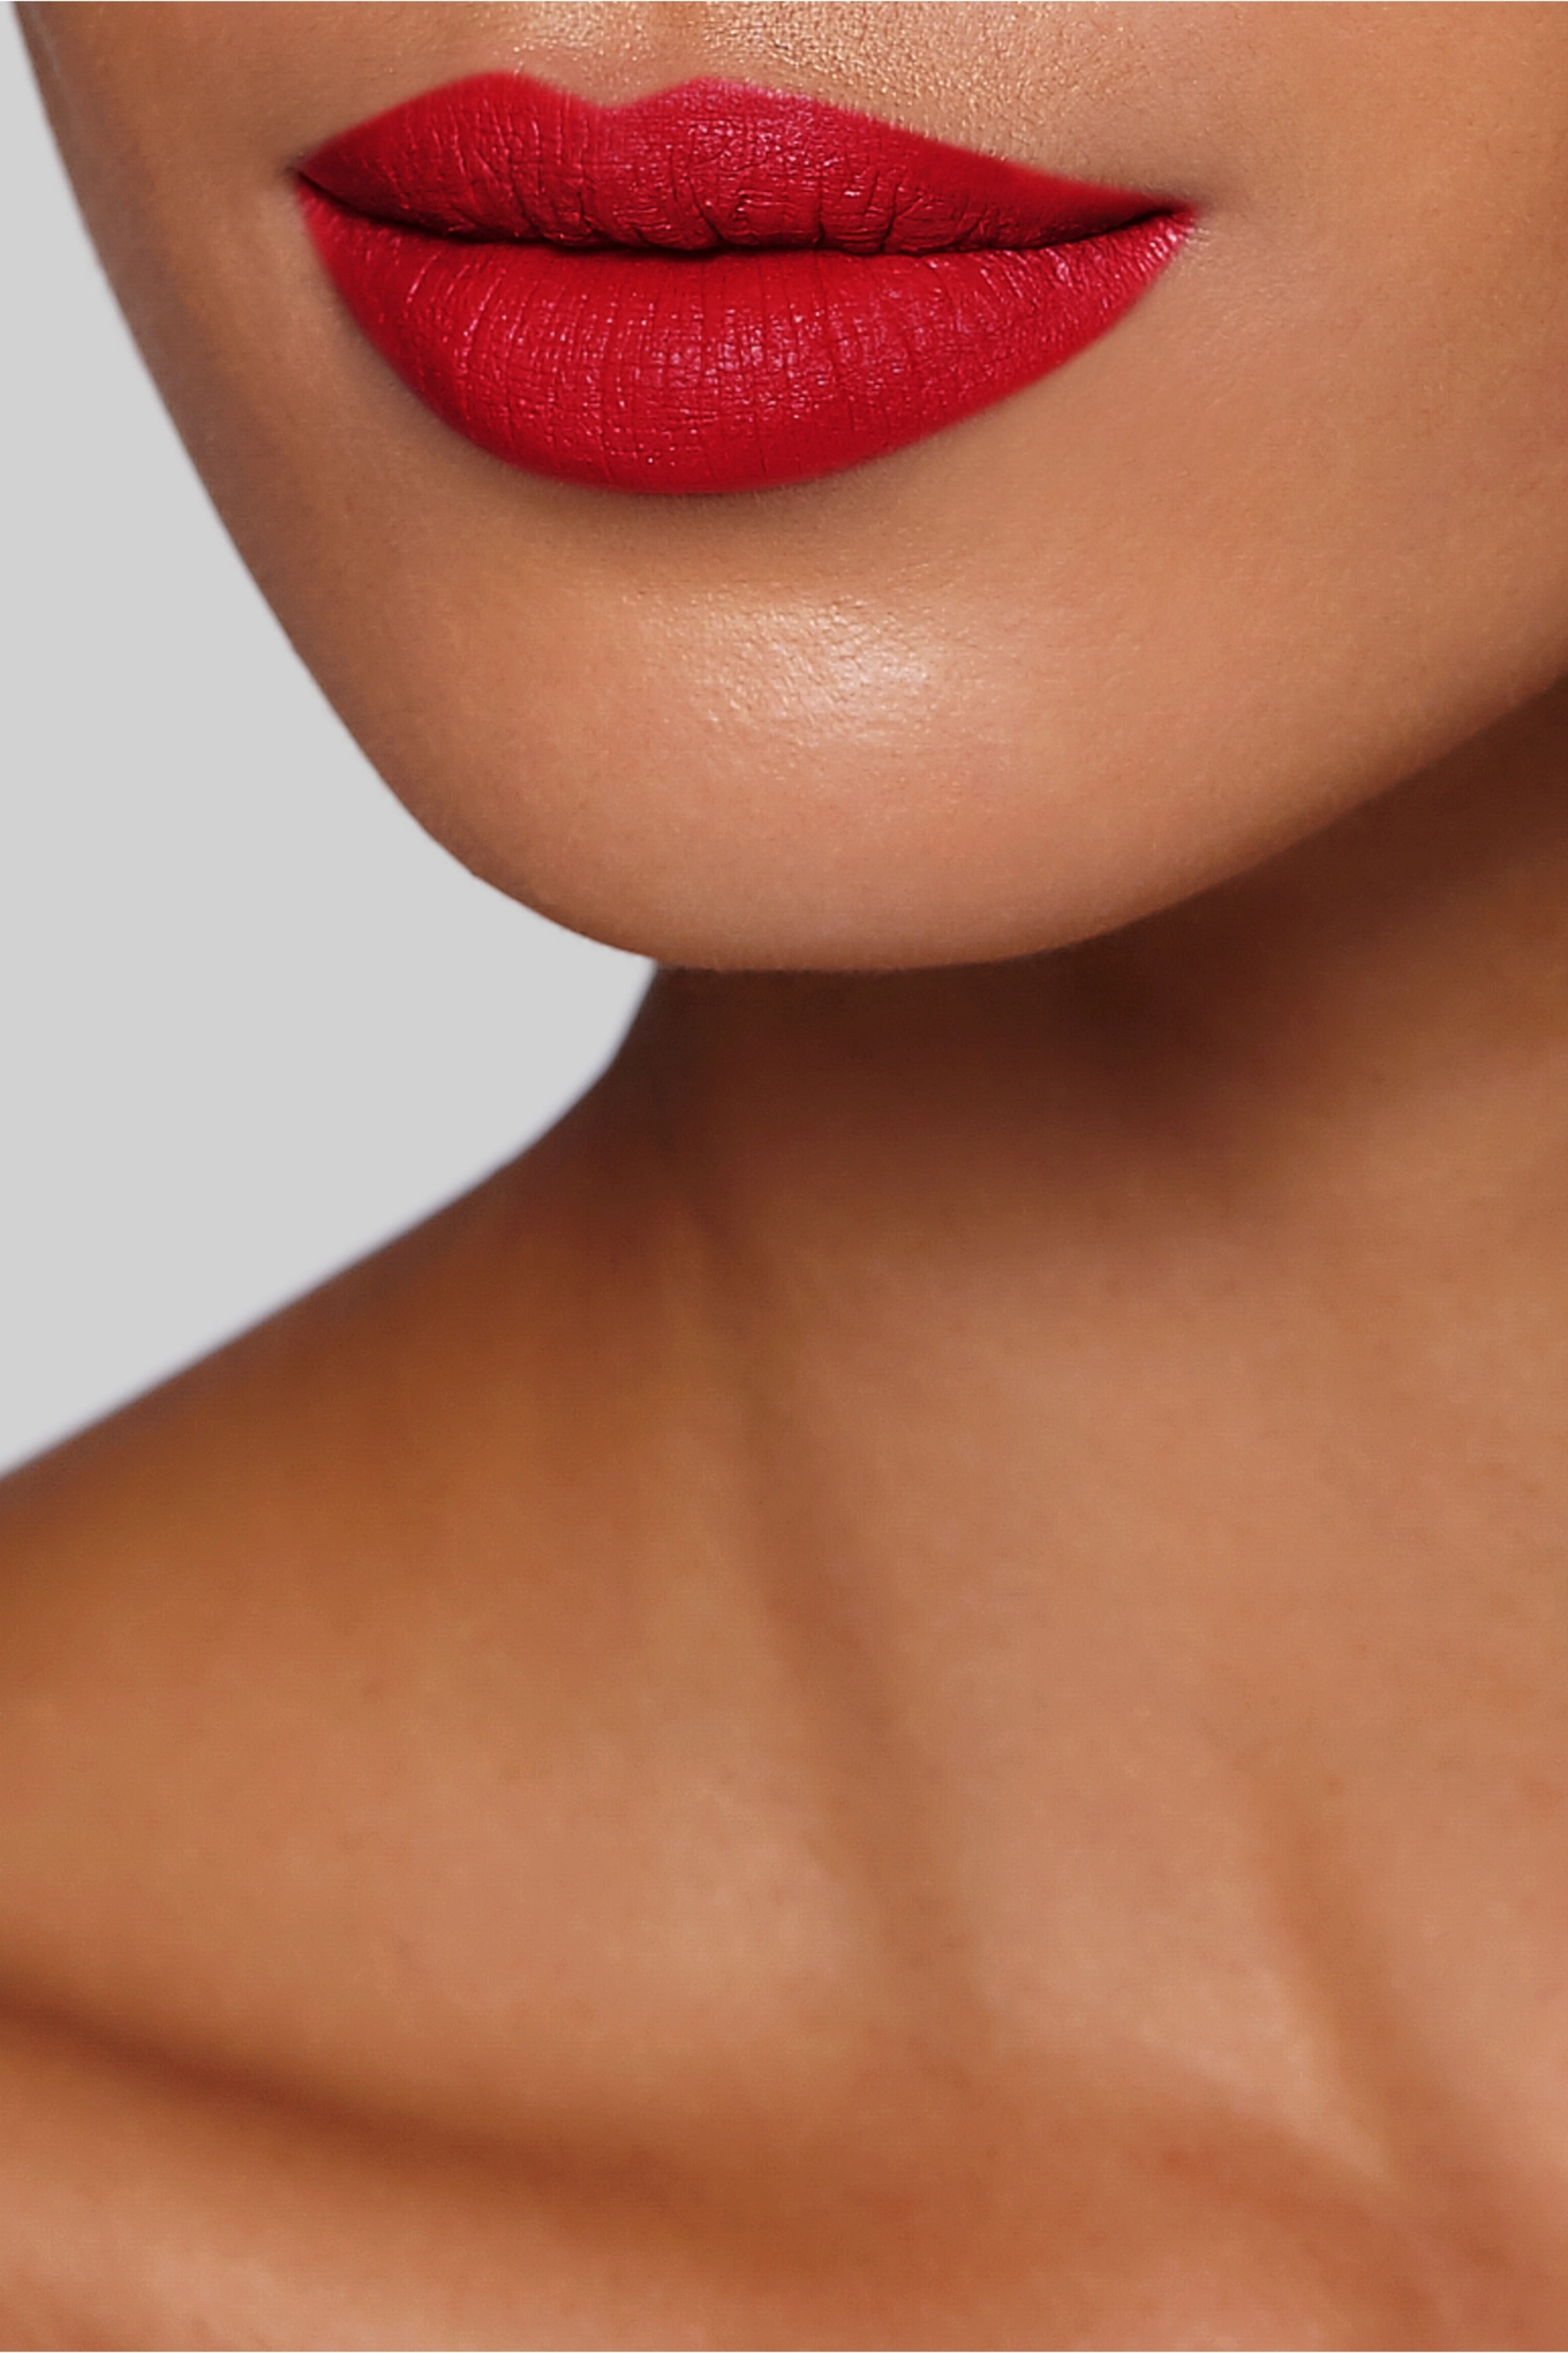 Christian Louboutin Beauty Velvet Matte Lip Colour - Altressa